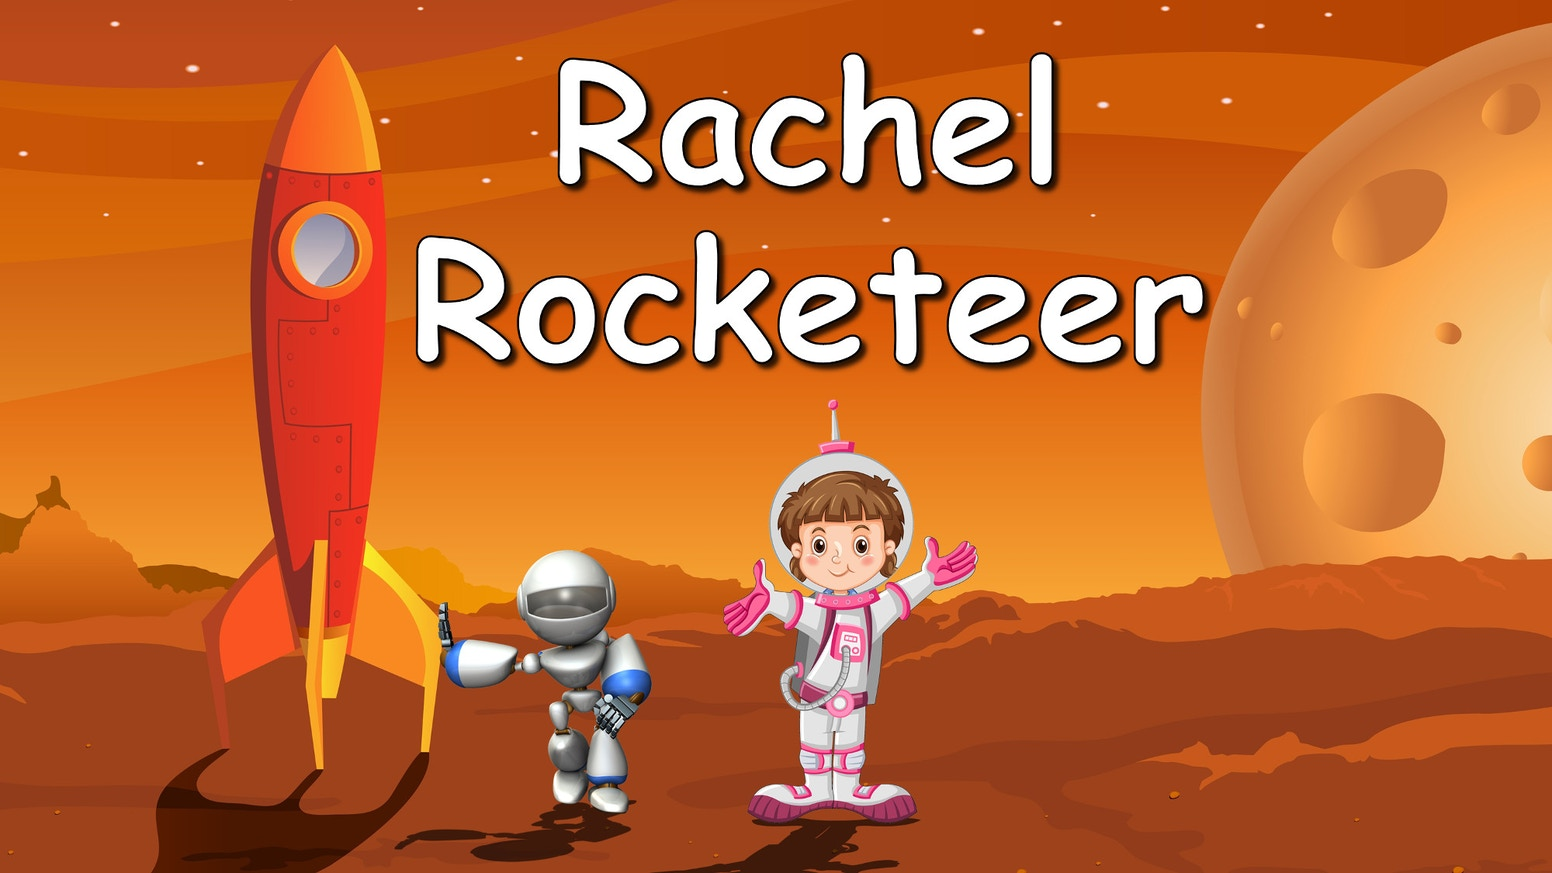 An illustrated STEM-filled storybook about a girl's quest to design, build and test a rocket that can take her to Mars.